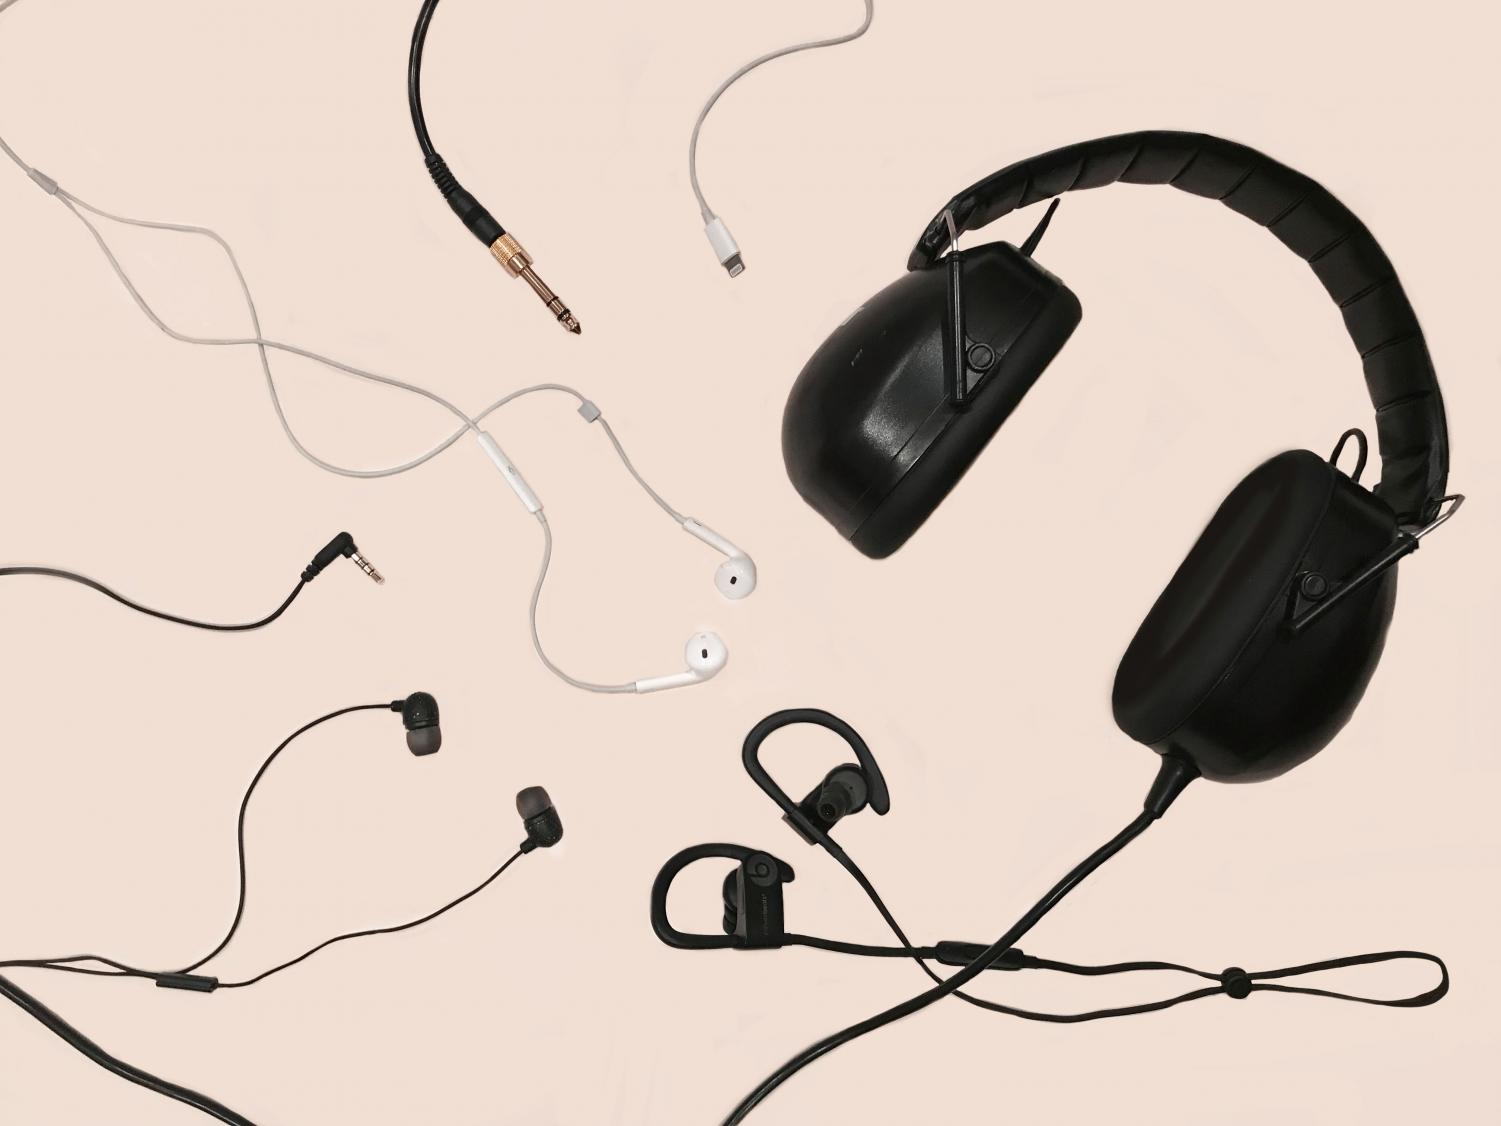 Headphones, earbuds or even bluetooth earplugs have become a necessity to people's everyday lives to listen to music.